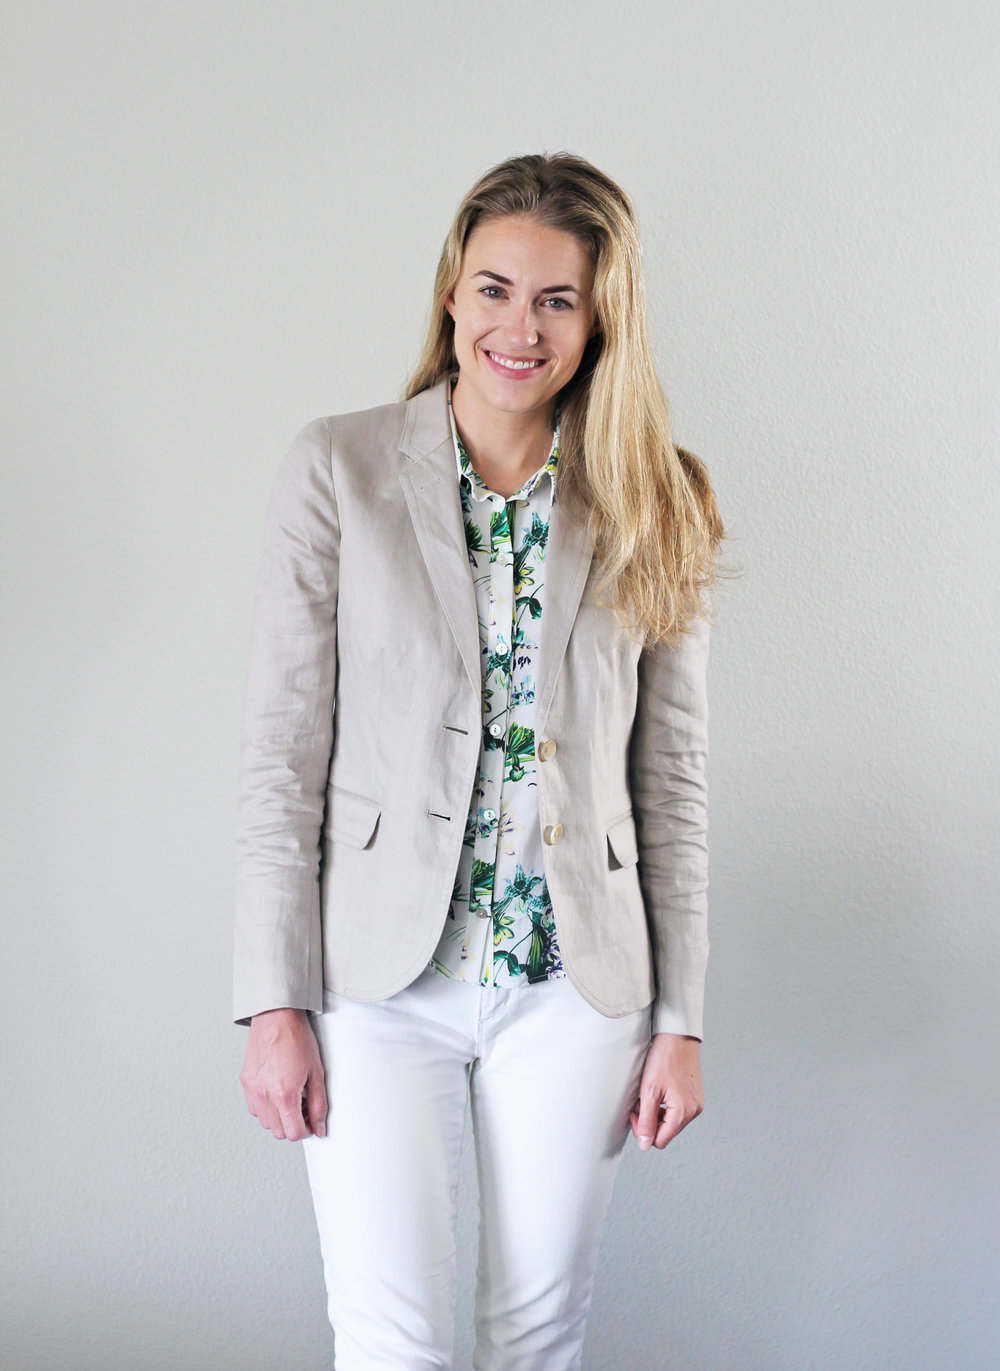 Linen blazer outfit for work — Cotton Cashmere Cat Hair